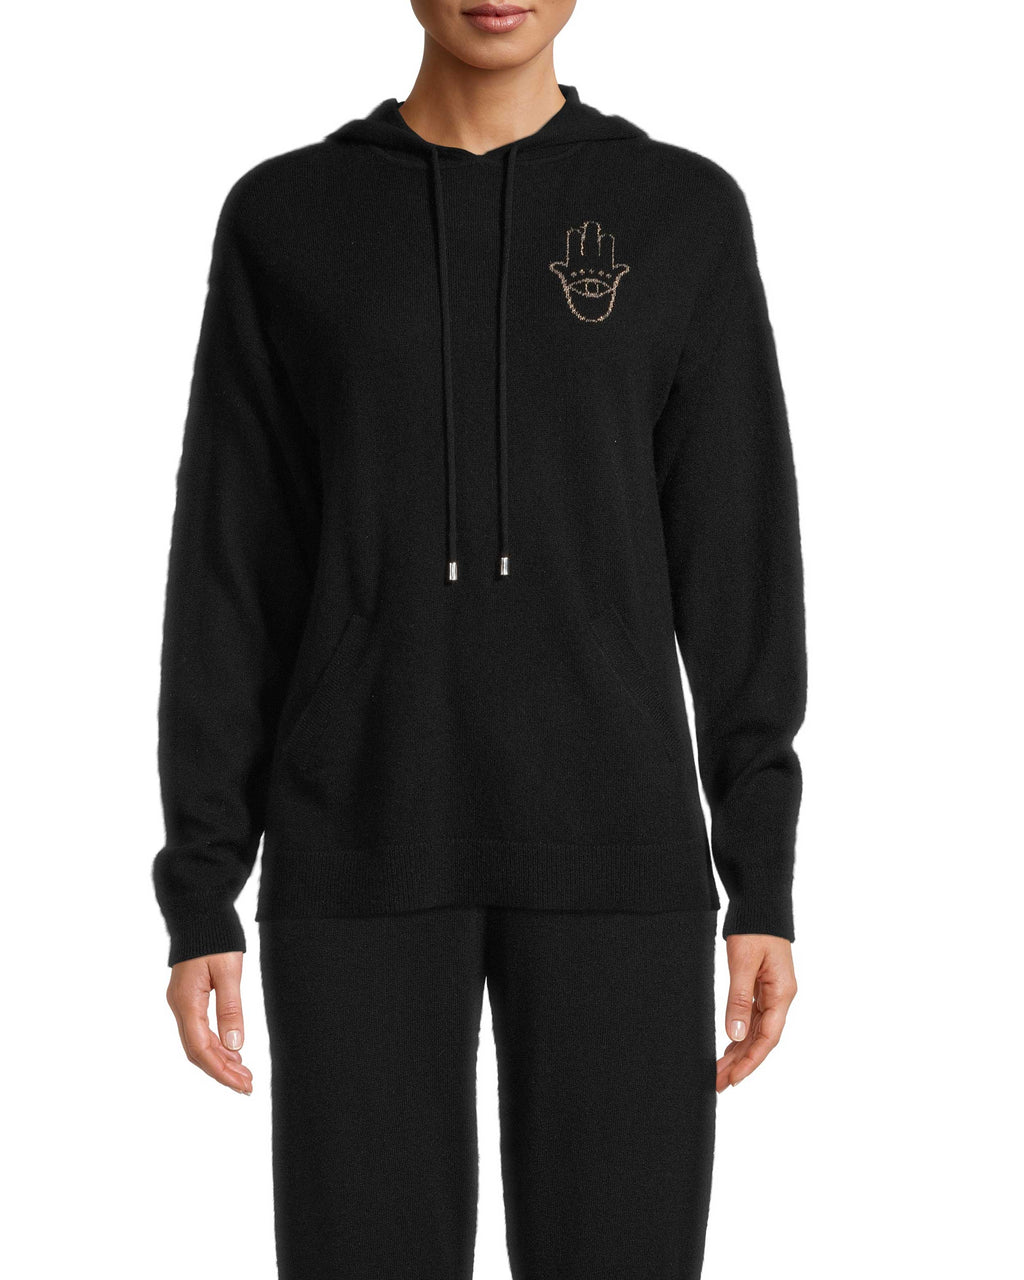 CT18335 - HAMSA HOODIE - tops - knitwear - Crafted from 100% cashmere, our cashmere hoodie is decorated with a shimmery gold threaded hamsa. The Hamsa is a universal protectvie sign that brings happiness, luck and health to its owner. Add 1 line break Stylist tip: Pair with our cashmere jogger for a complete cashmere lounge set.